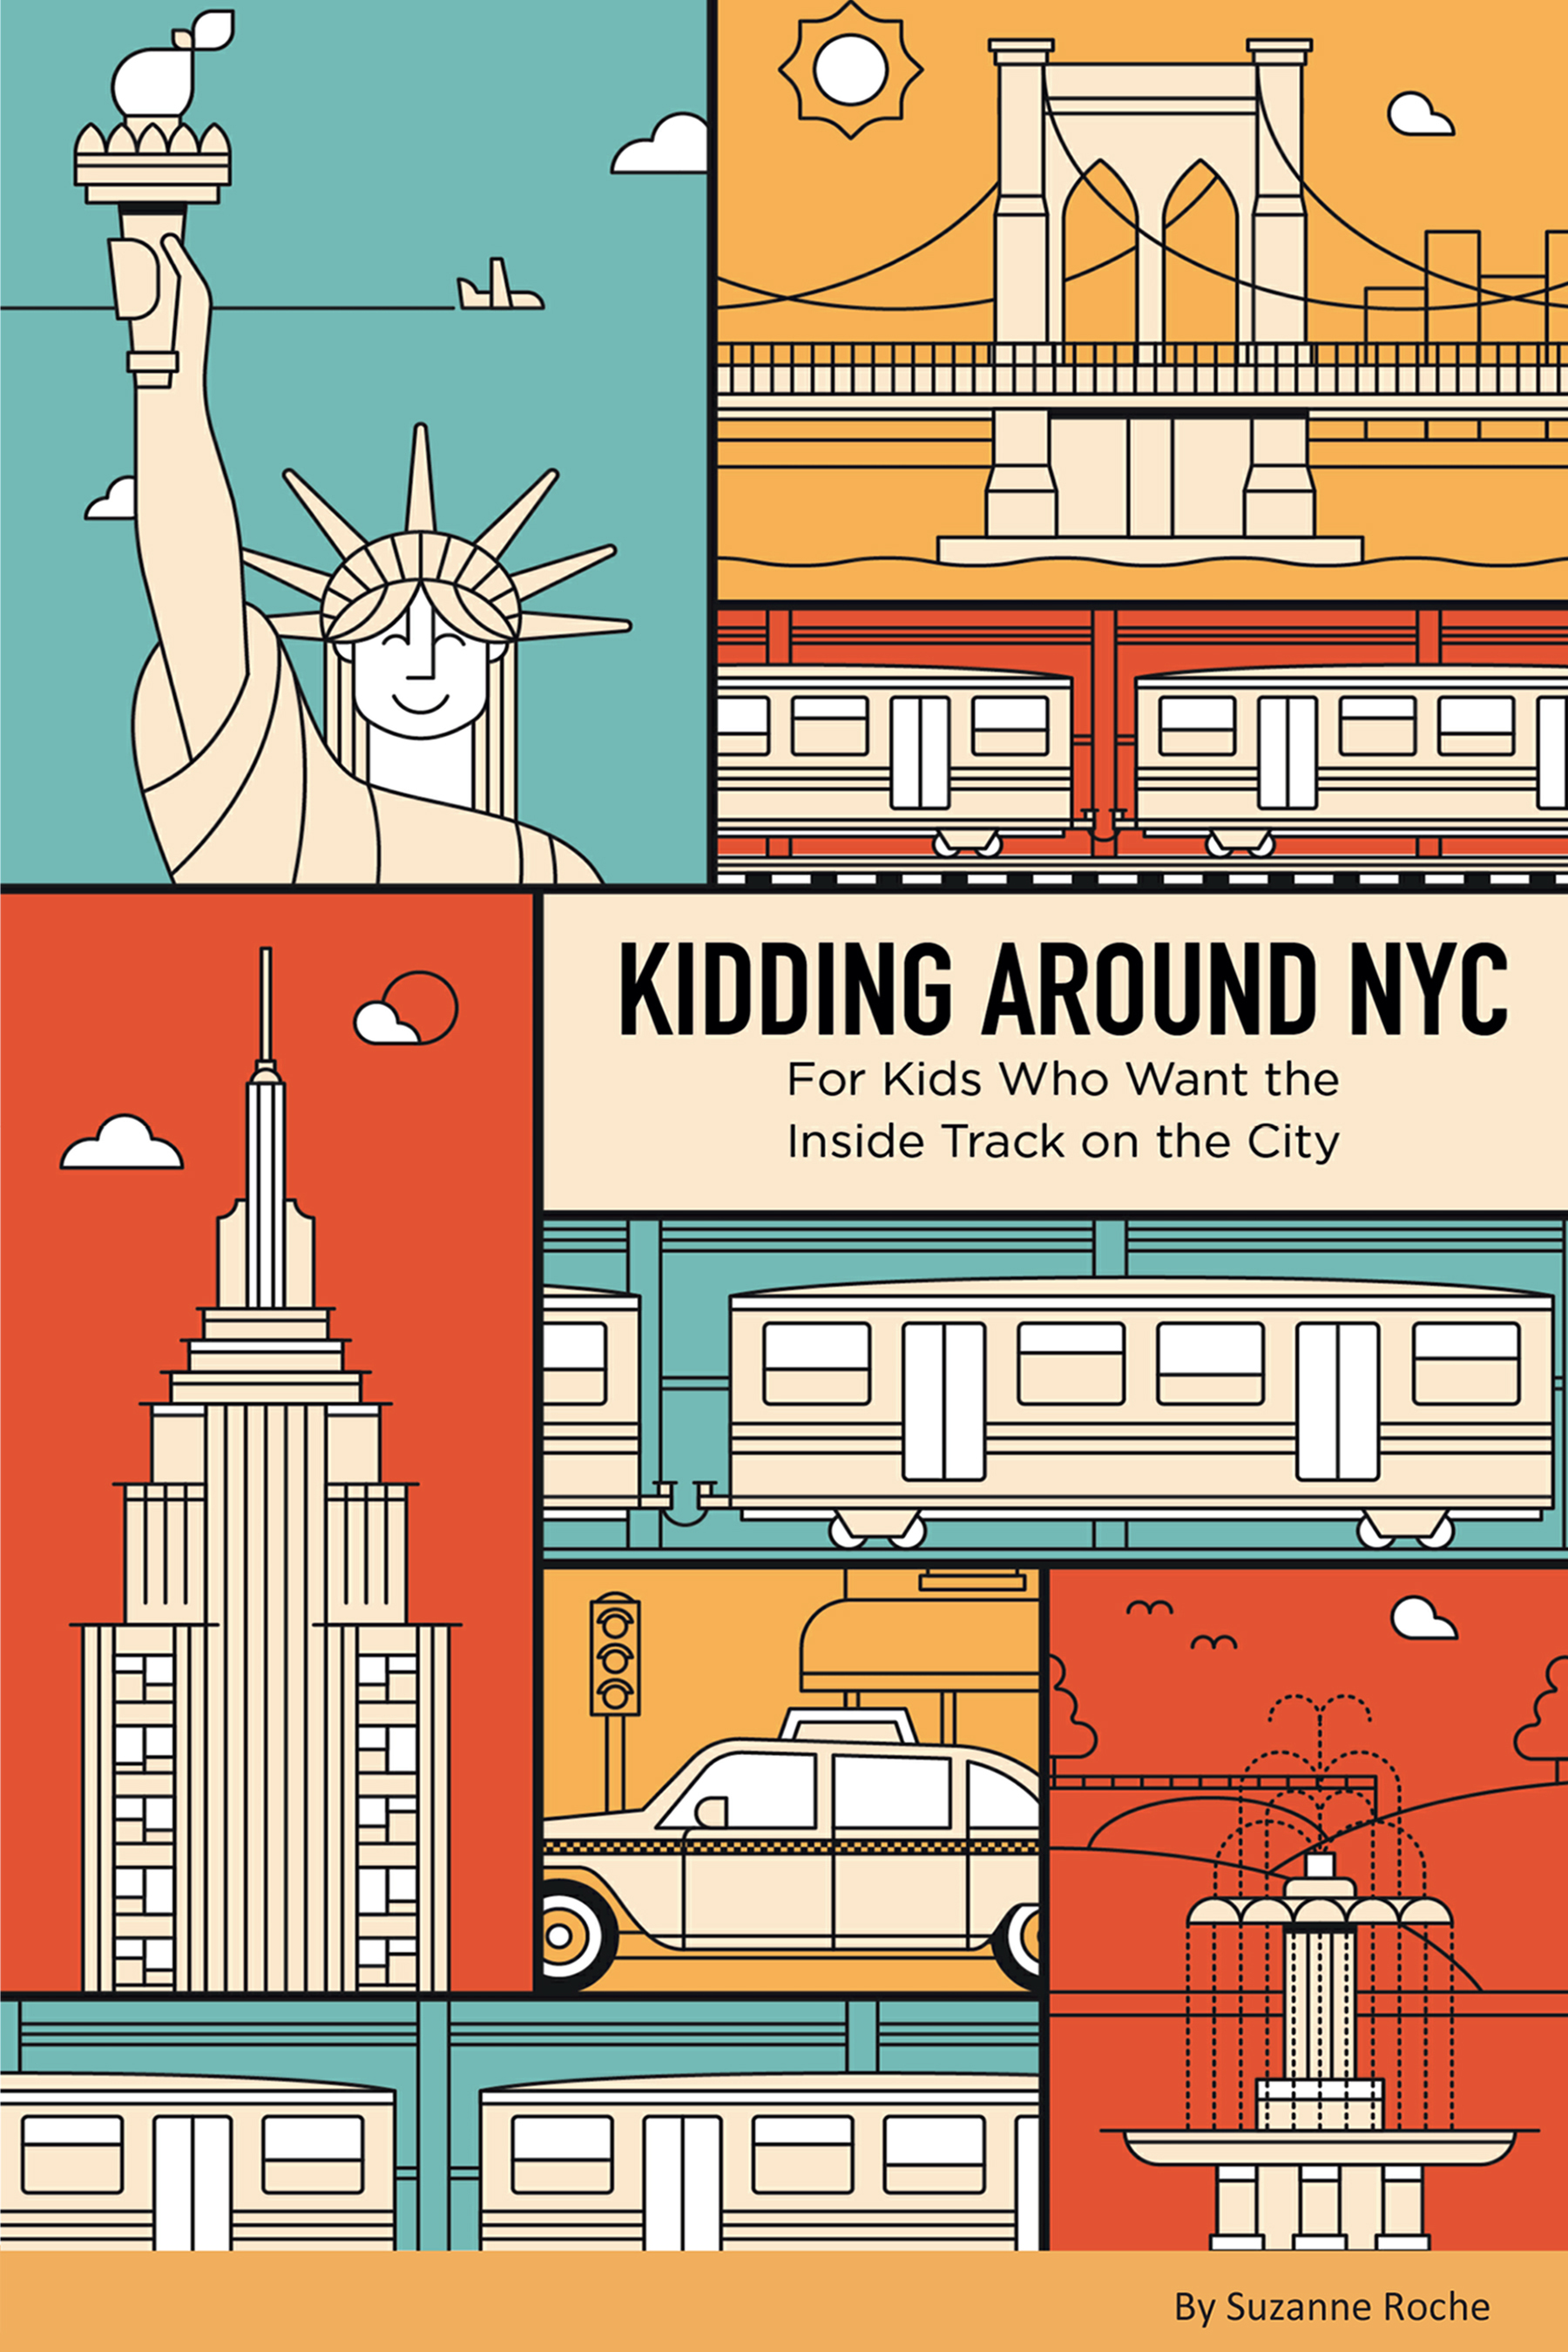 Kidding Around NYC: For Kids Who Want The Inside Track On The City Suzanne Roche